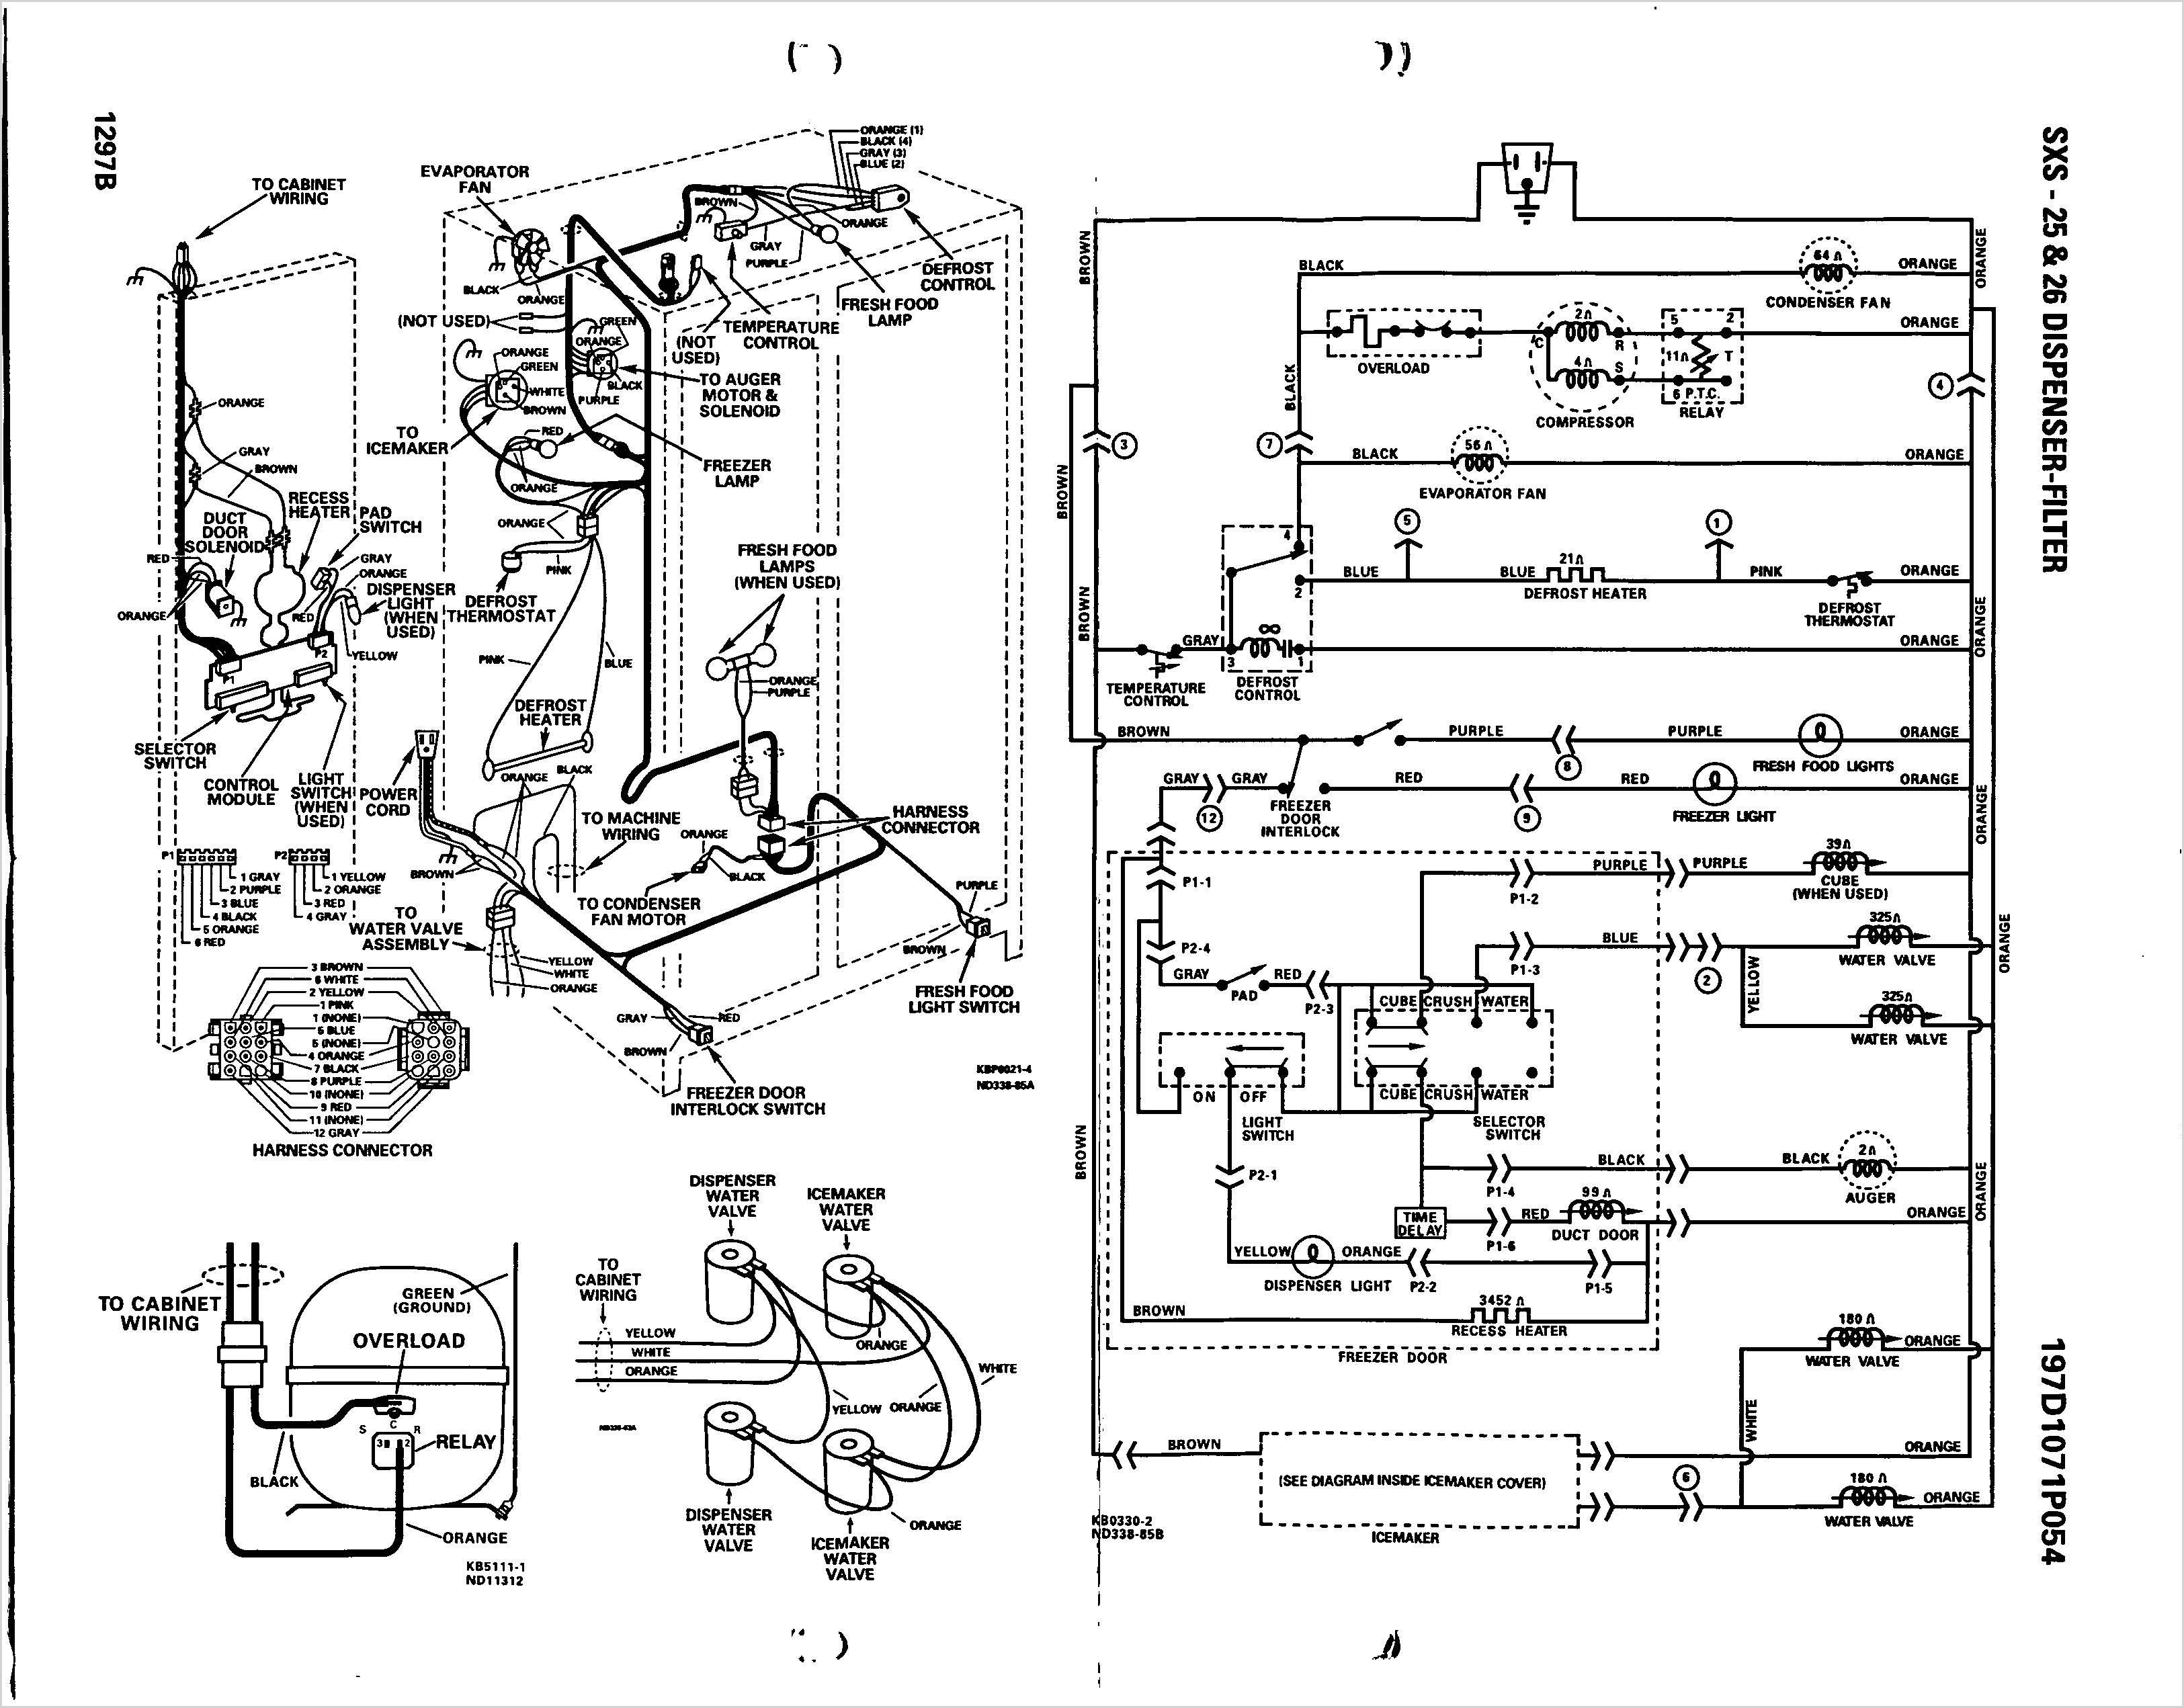 whirlpool gas dryer wiring diagram Collection-Wiring Diagrams For Whirlpool Dryer 18-n